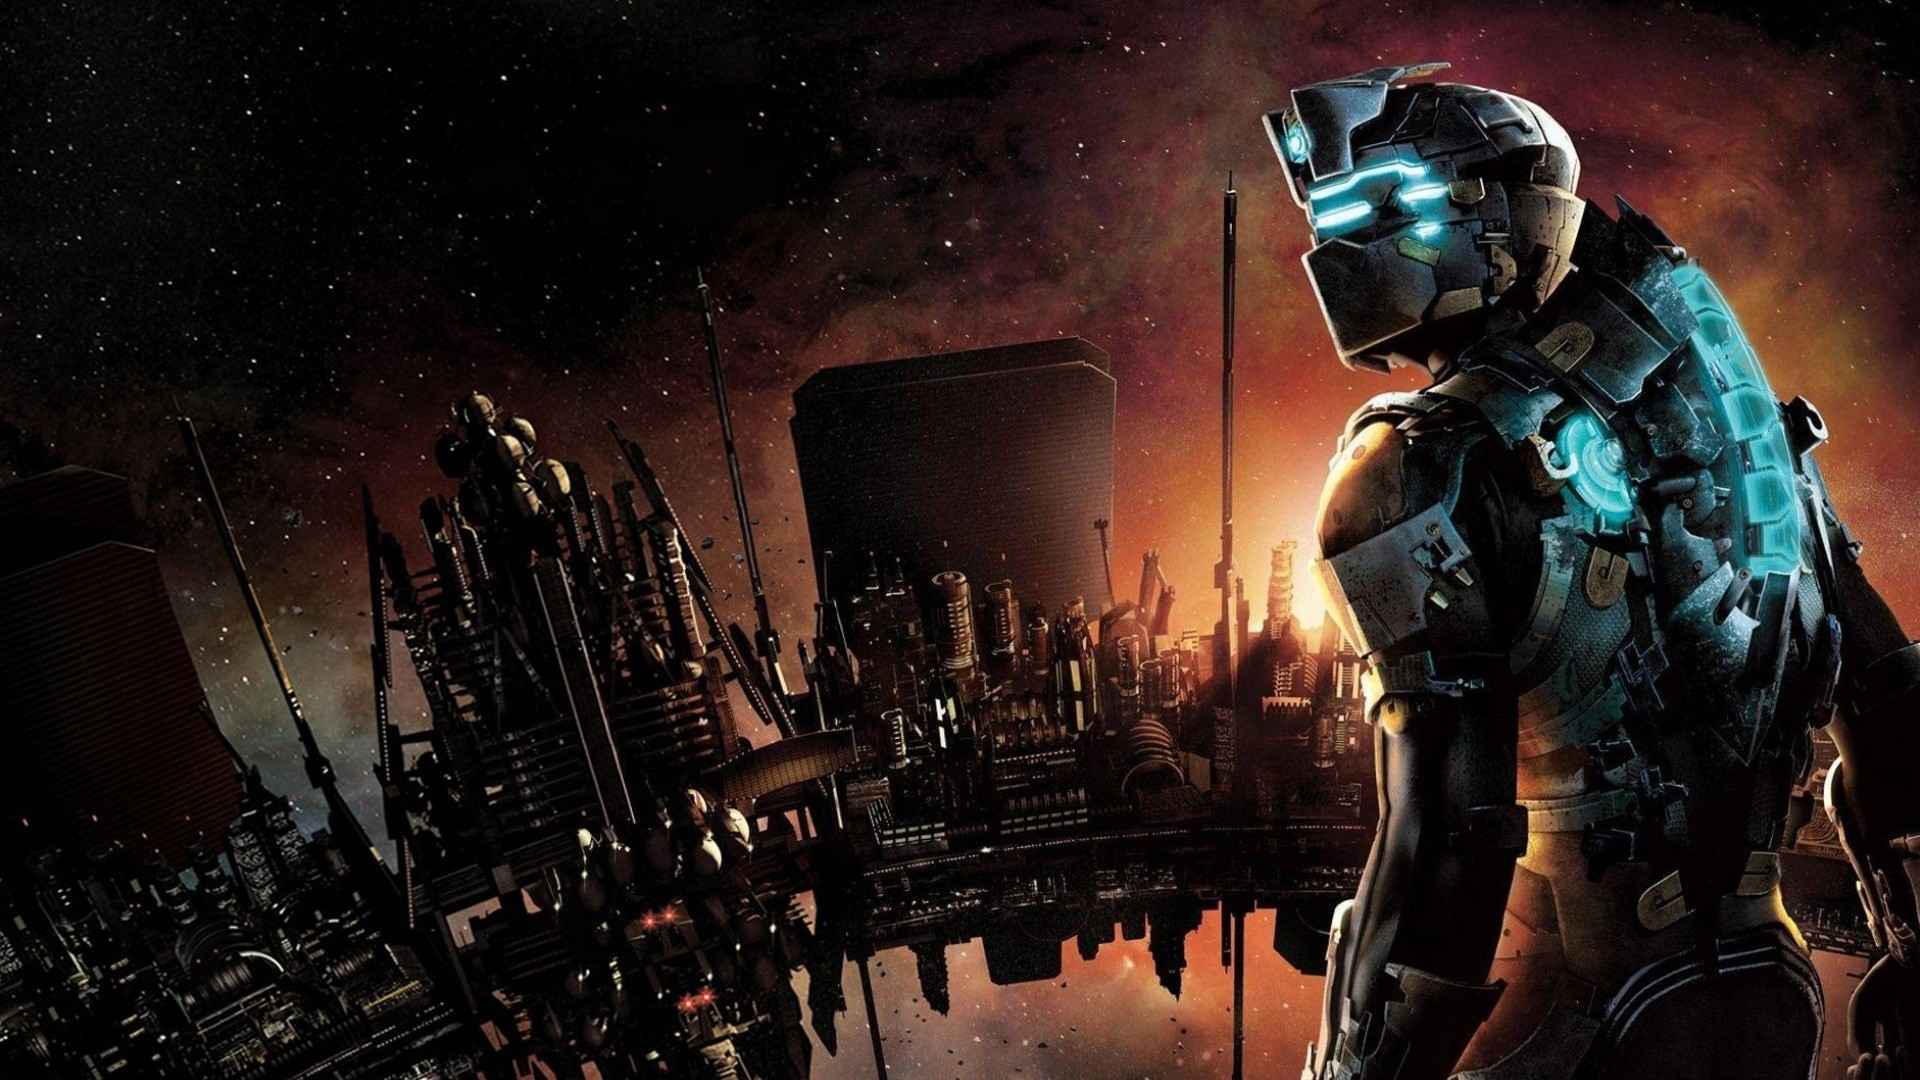 Related Wallpapers from Fallout New Vegas Wallpaper. Dead Space Wallpaper